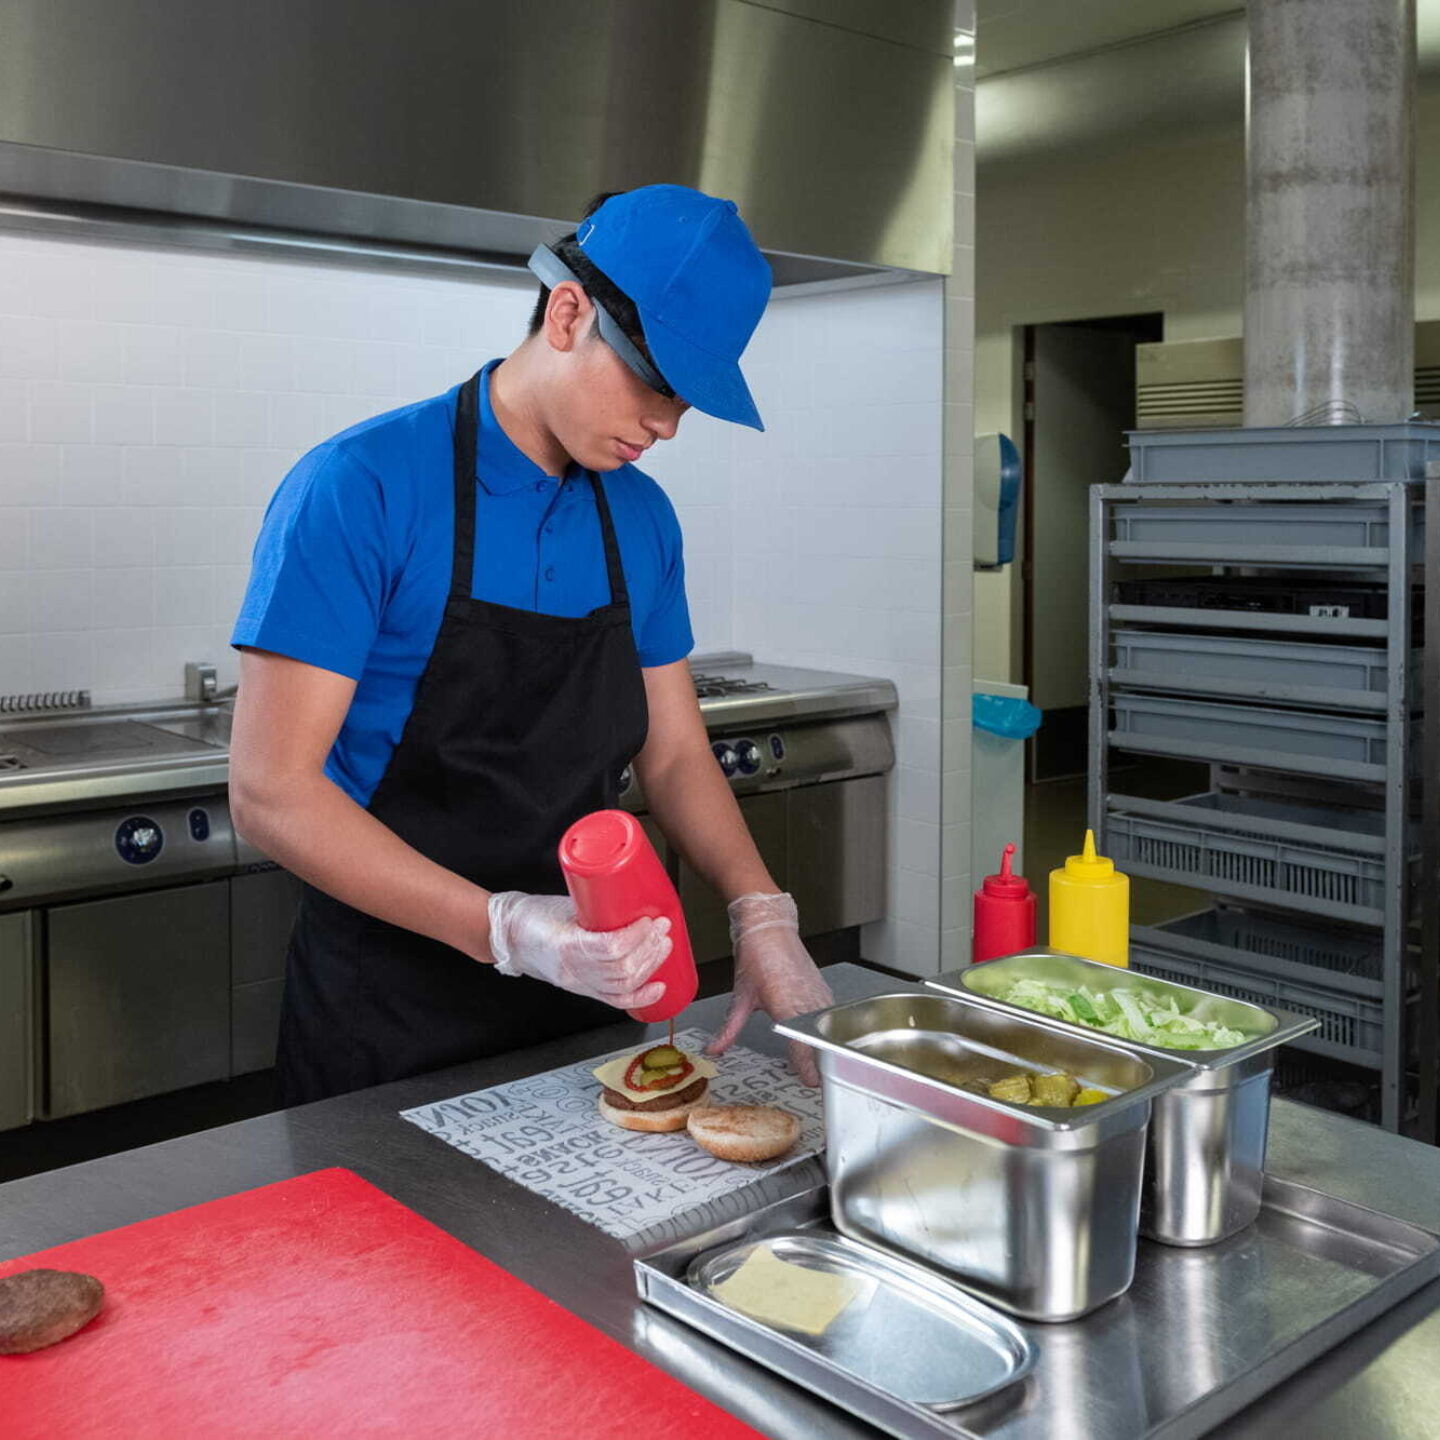 A restaurant worker adding sauce on burger patty - Wearable AR Technology for Food Service Industry | NSF International